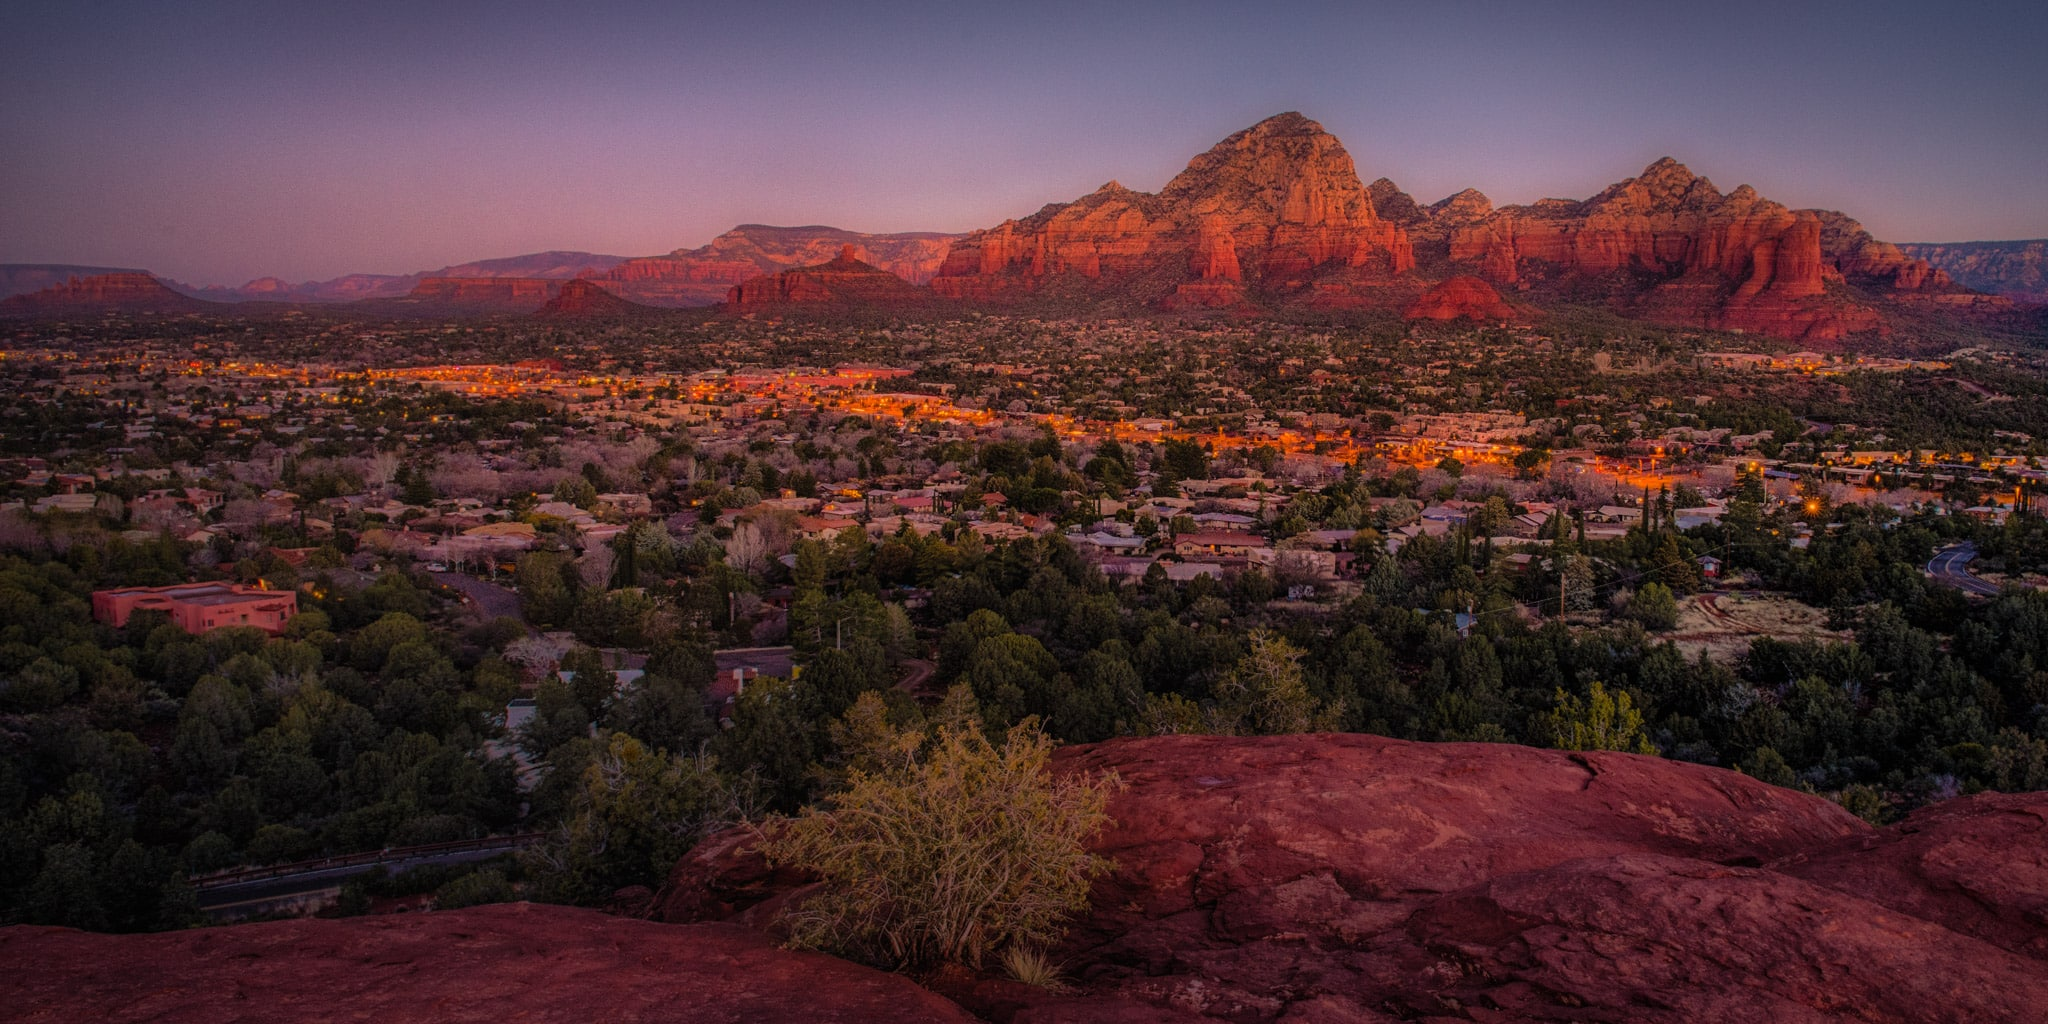 A view of Sedona as seen from the Sedona Arizona Airport at sunrise.